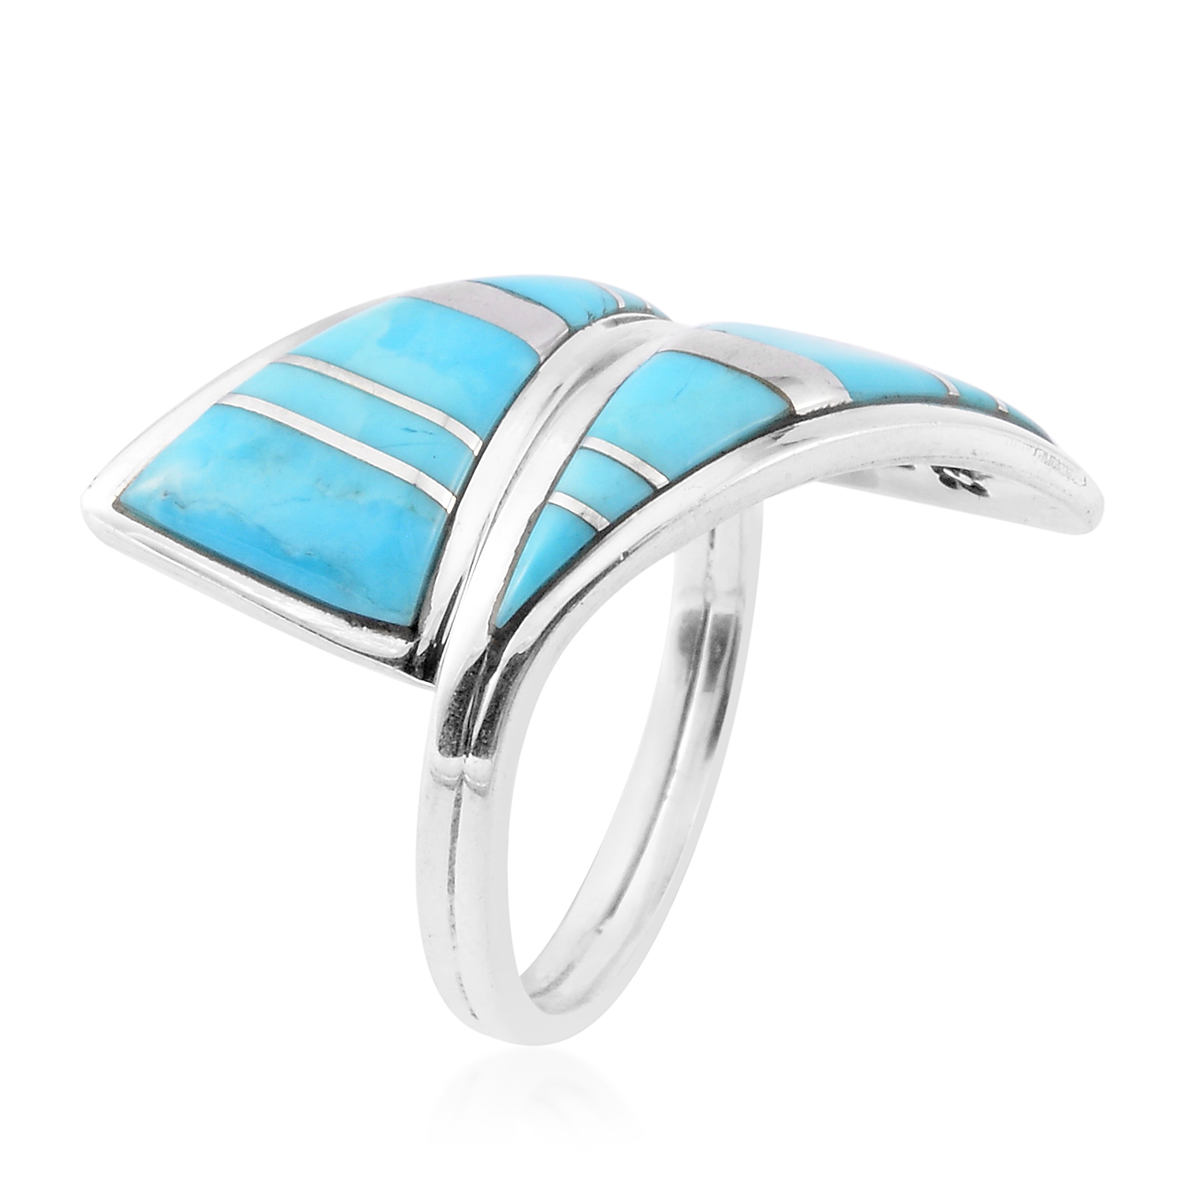 Santa Fe Style Kingman Turquoise Wrap Ring in Sterling Silver (Size 6.0) 3.50 ctw